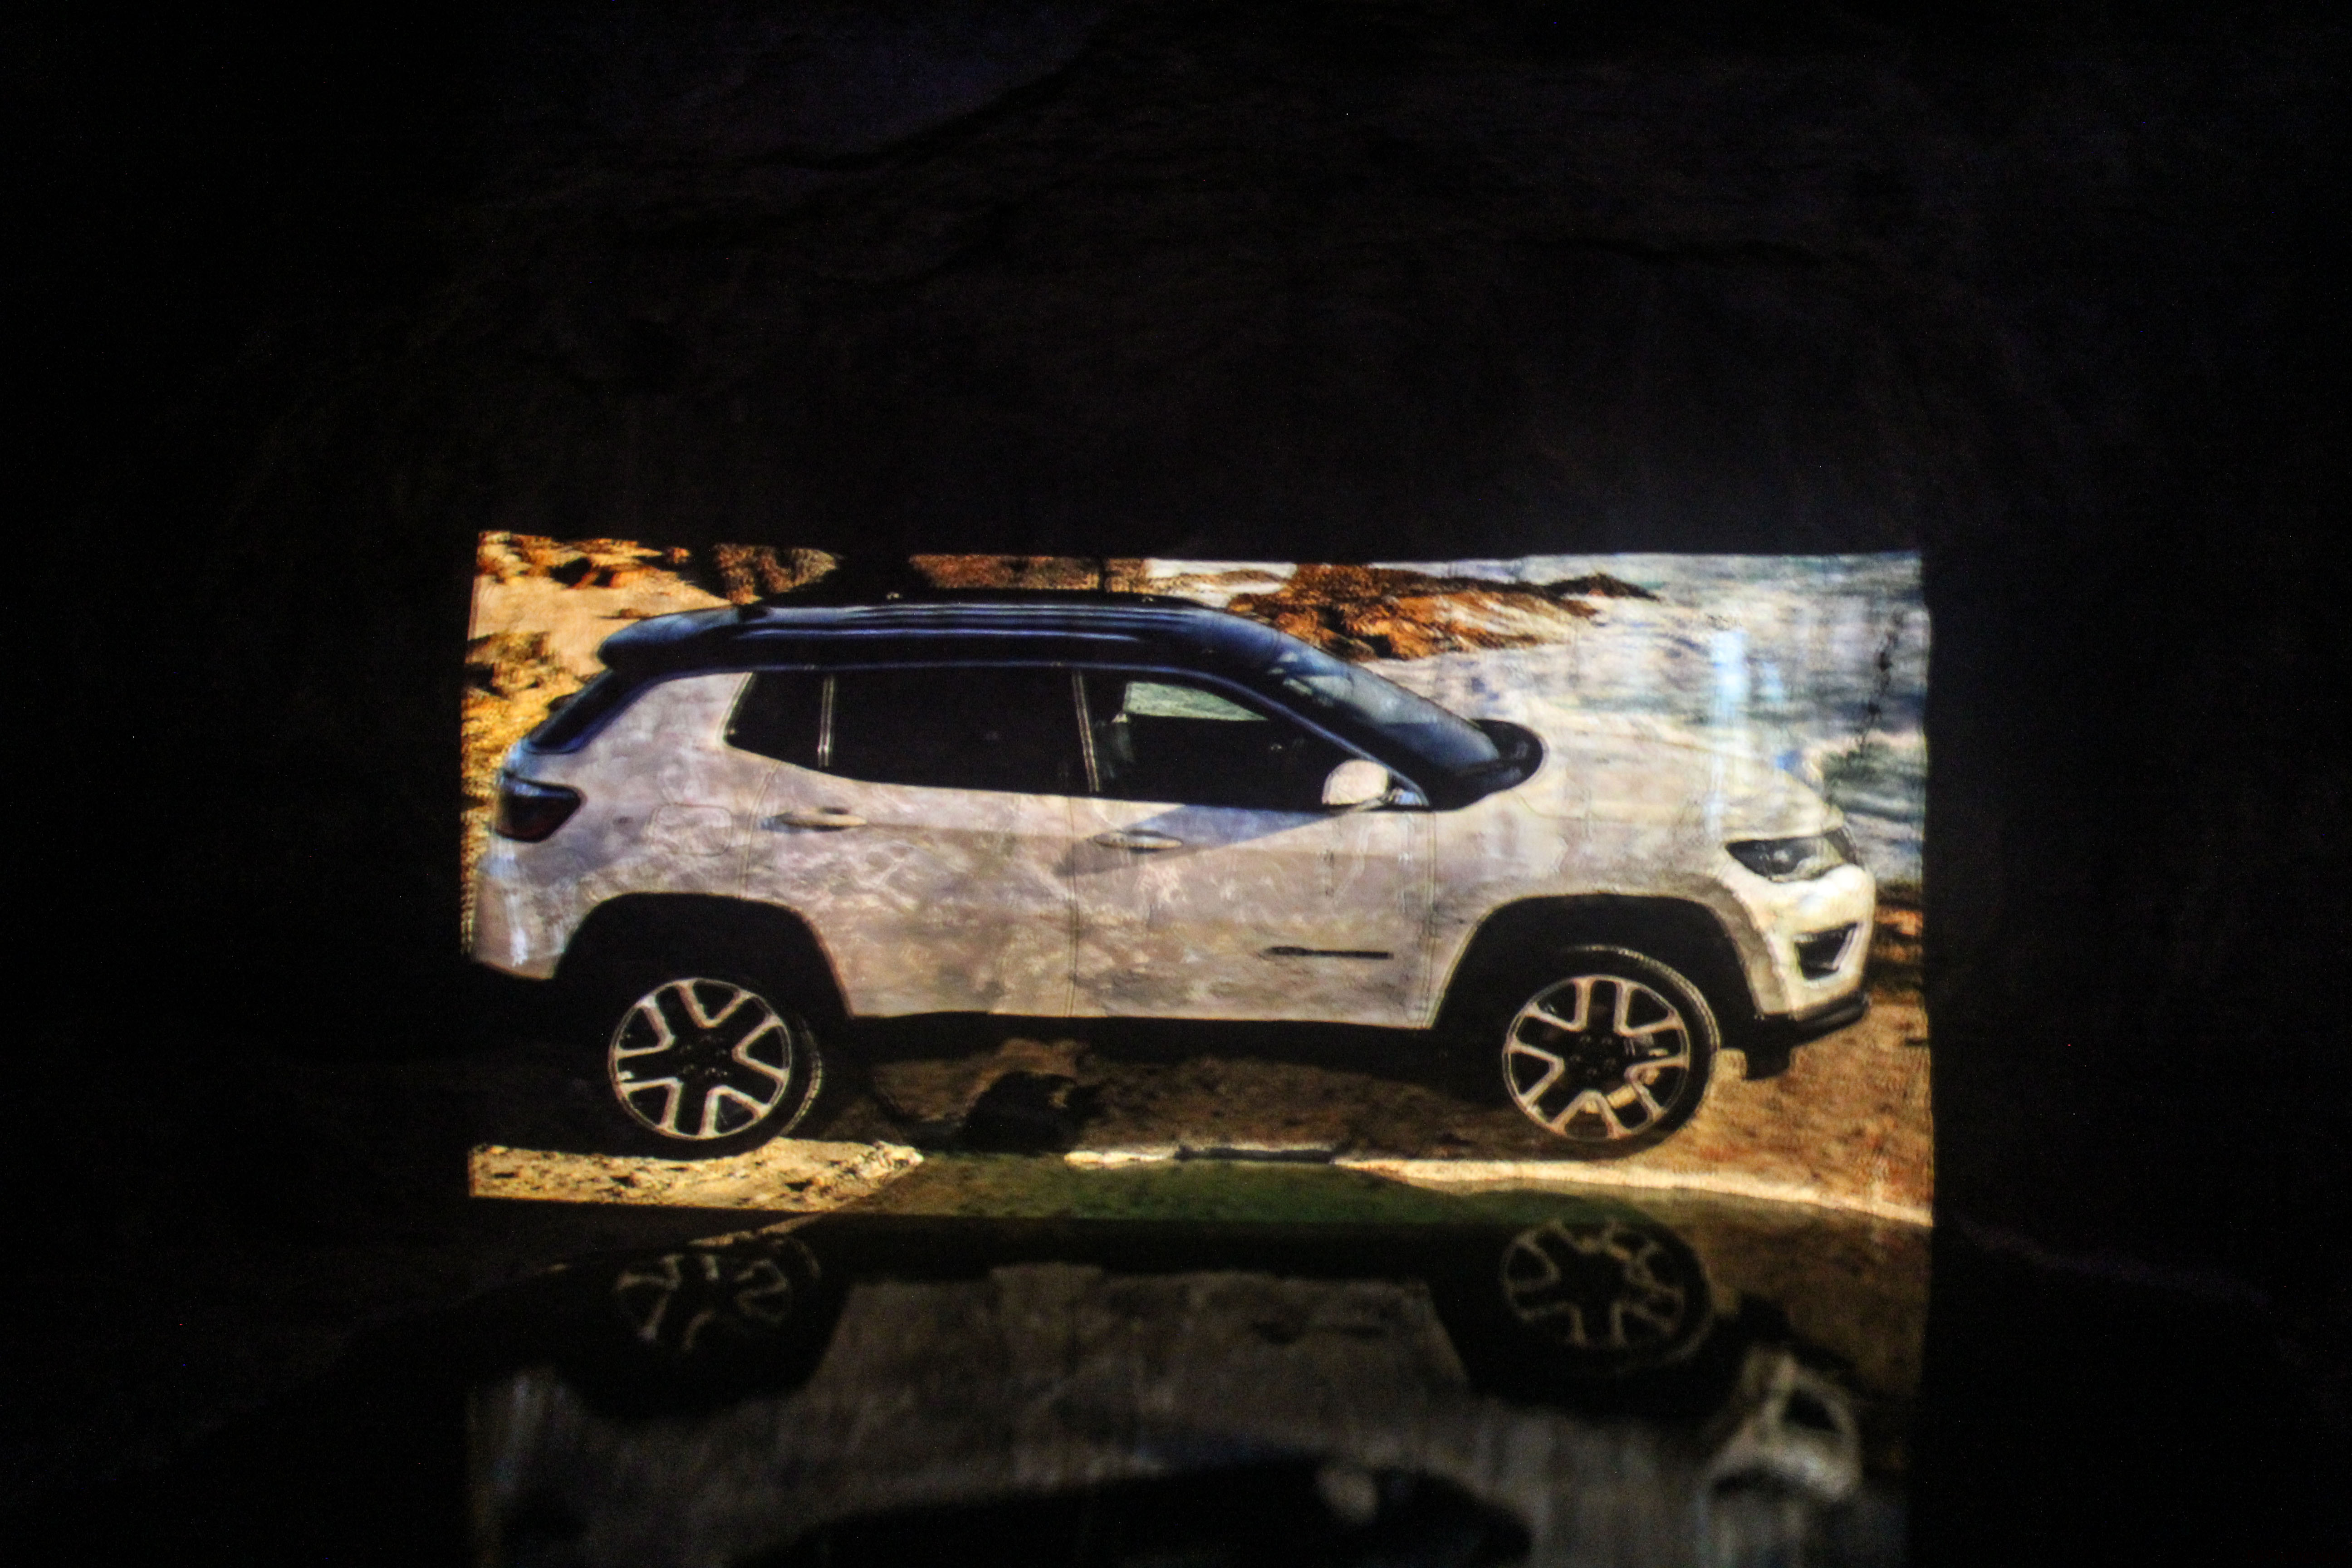 jeepcompass18-jeep-compass-grotte-Arnaud Demasier-RSPhotographie